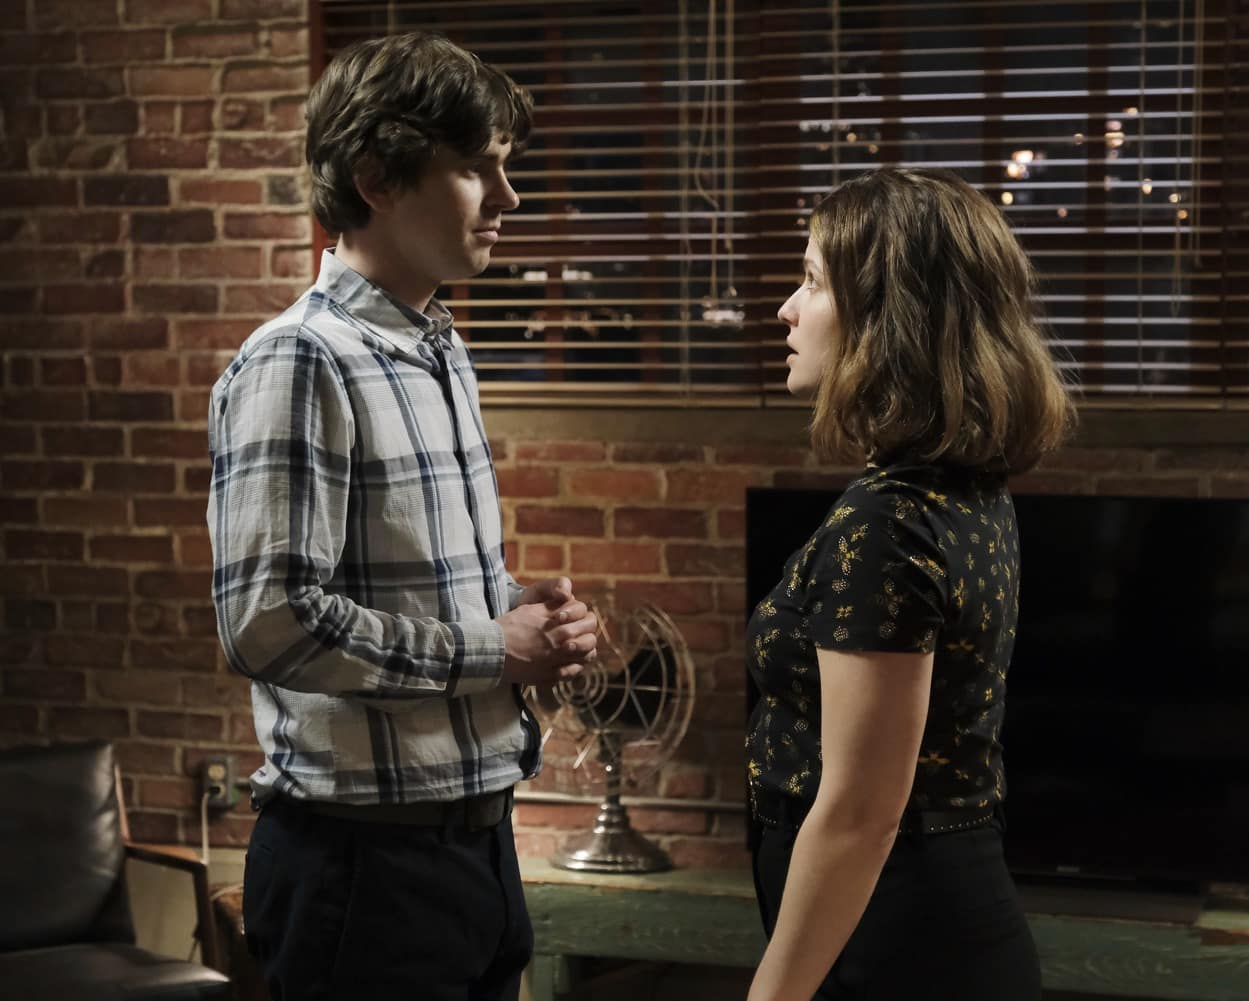 """The Good Doctor Season 4 Episode 11 """"We're All Crazy Sometimes"""" – FREDDIE HIGHMORE, PAIGE SPARA"""